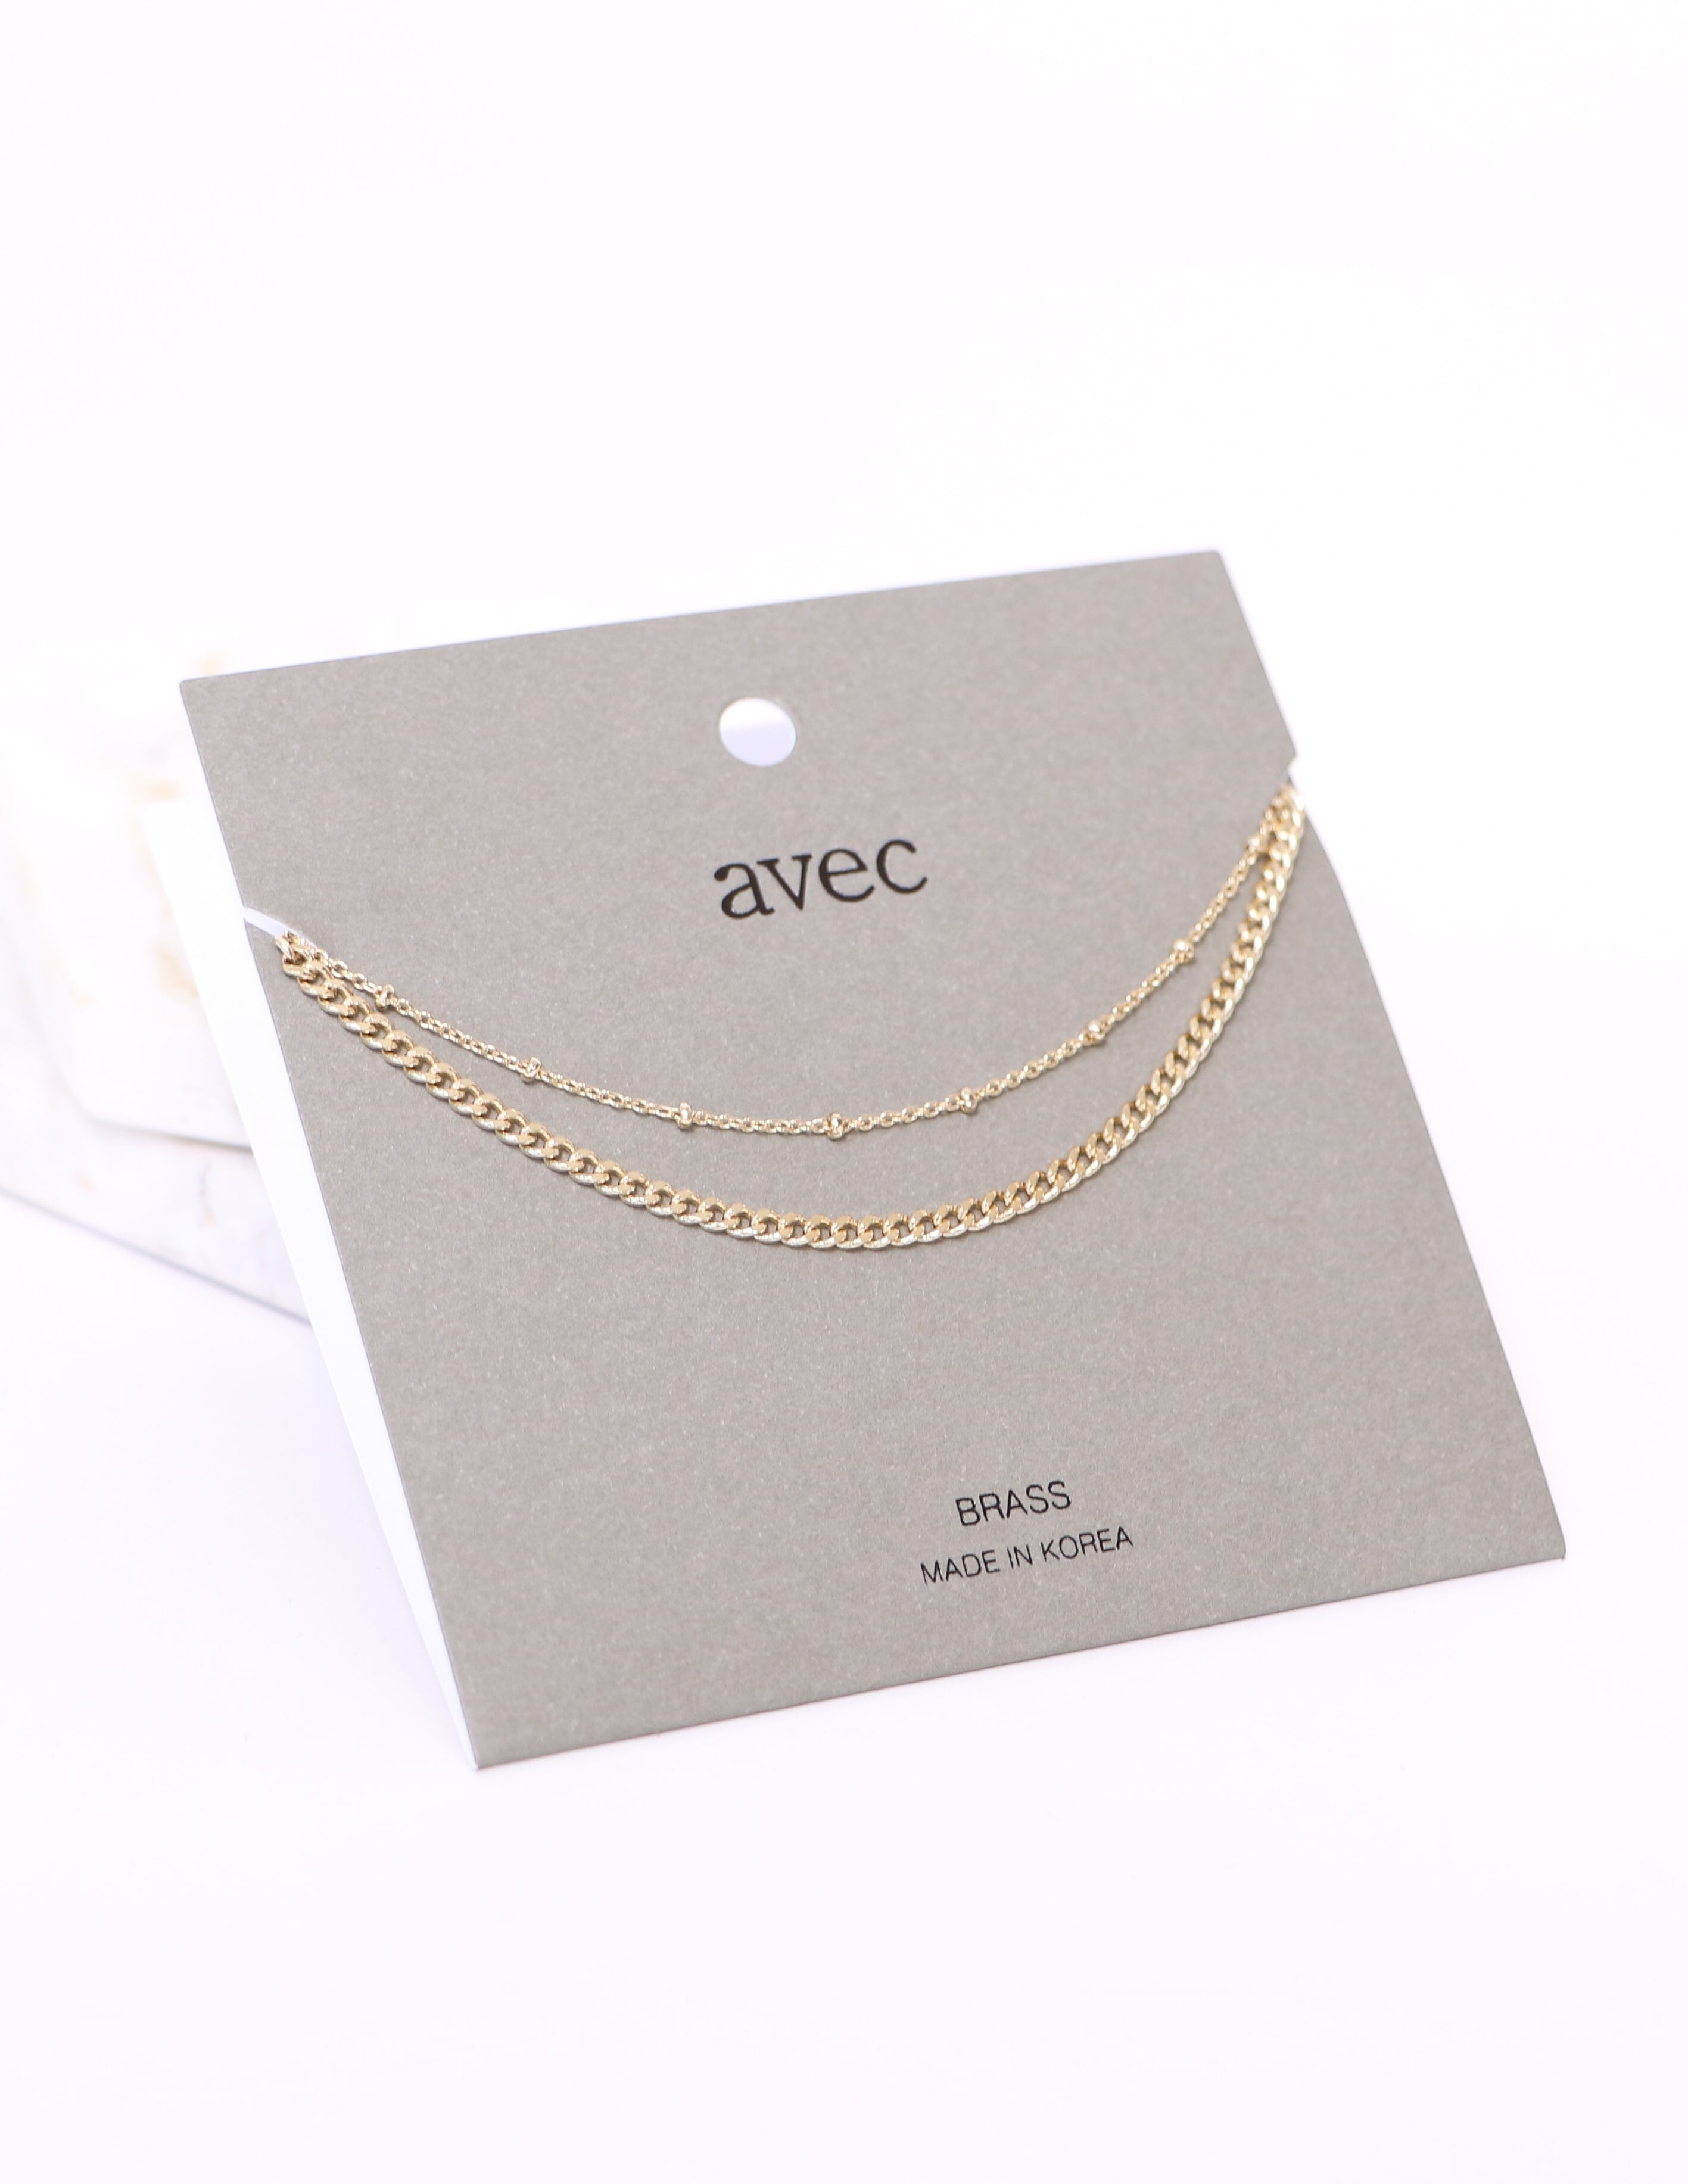 Layer eyes on this gold necklace on grey card packaging - elle bleu shoes